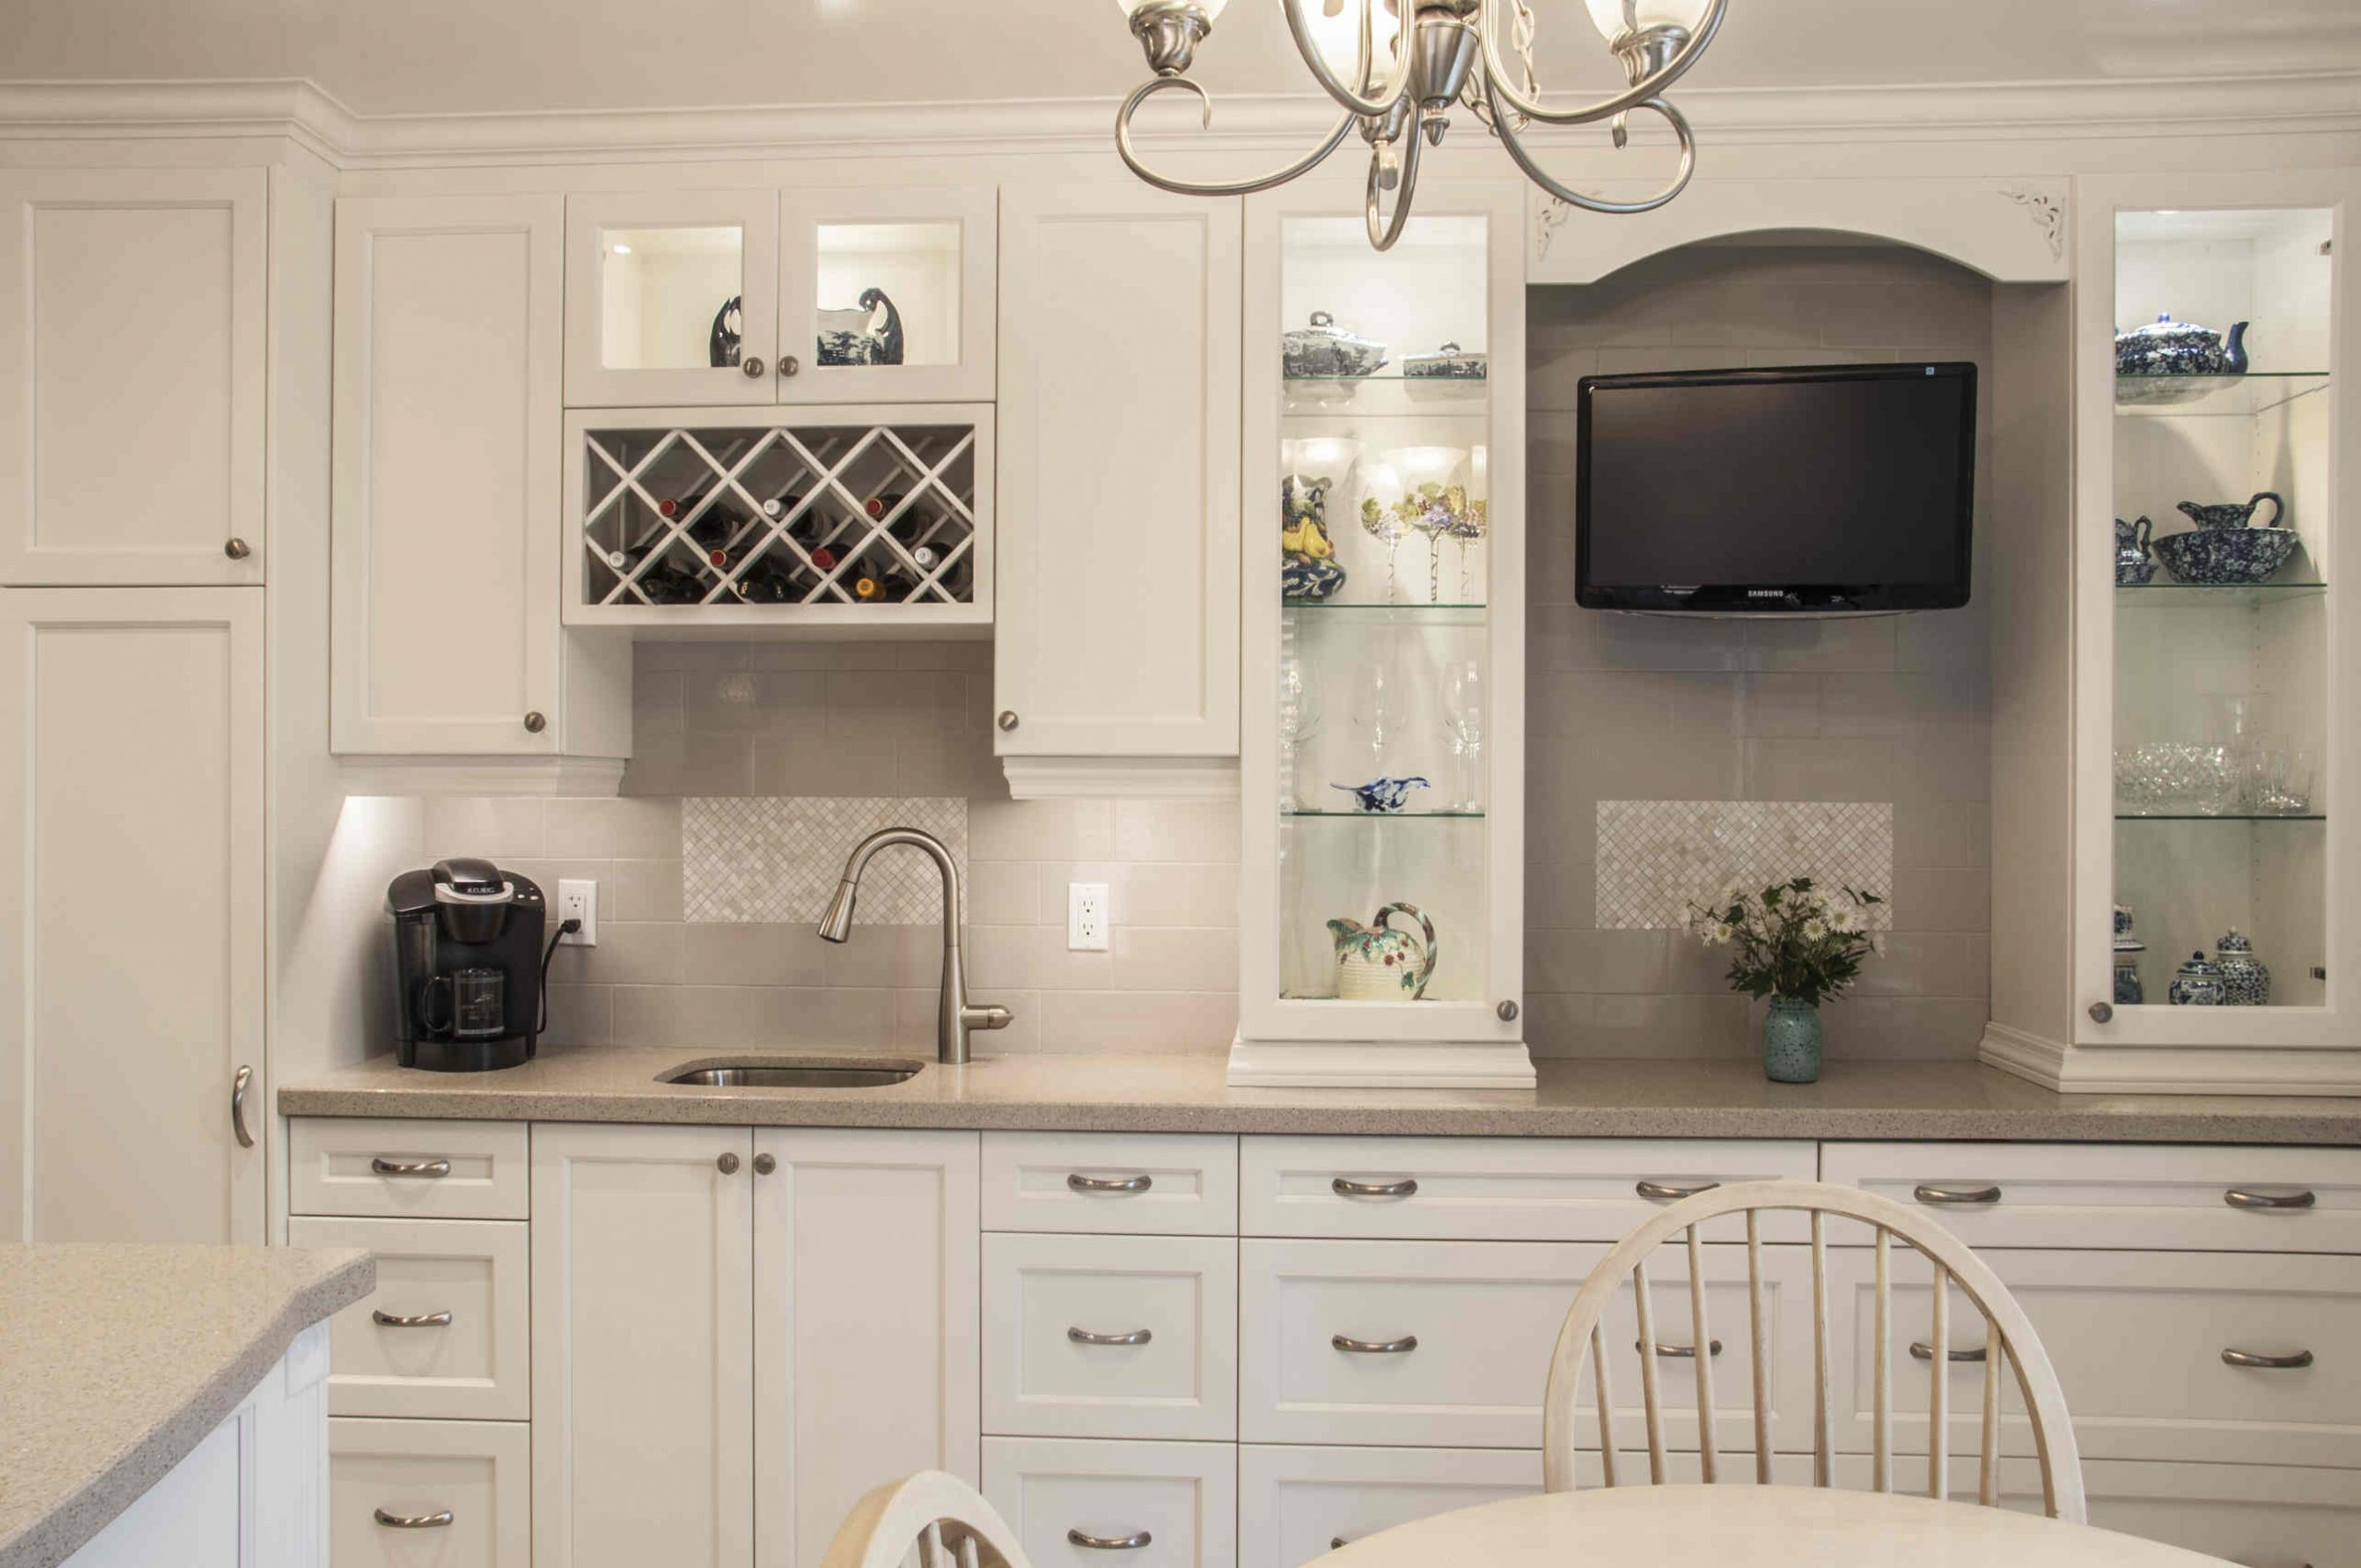 Kitchen Cabinets Flooring And Paint Easy Way To Revamp in proportions 2573 X 1709